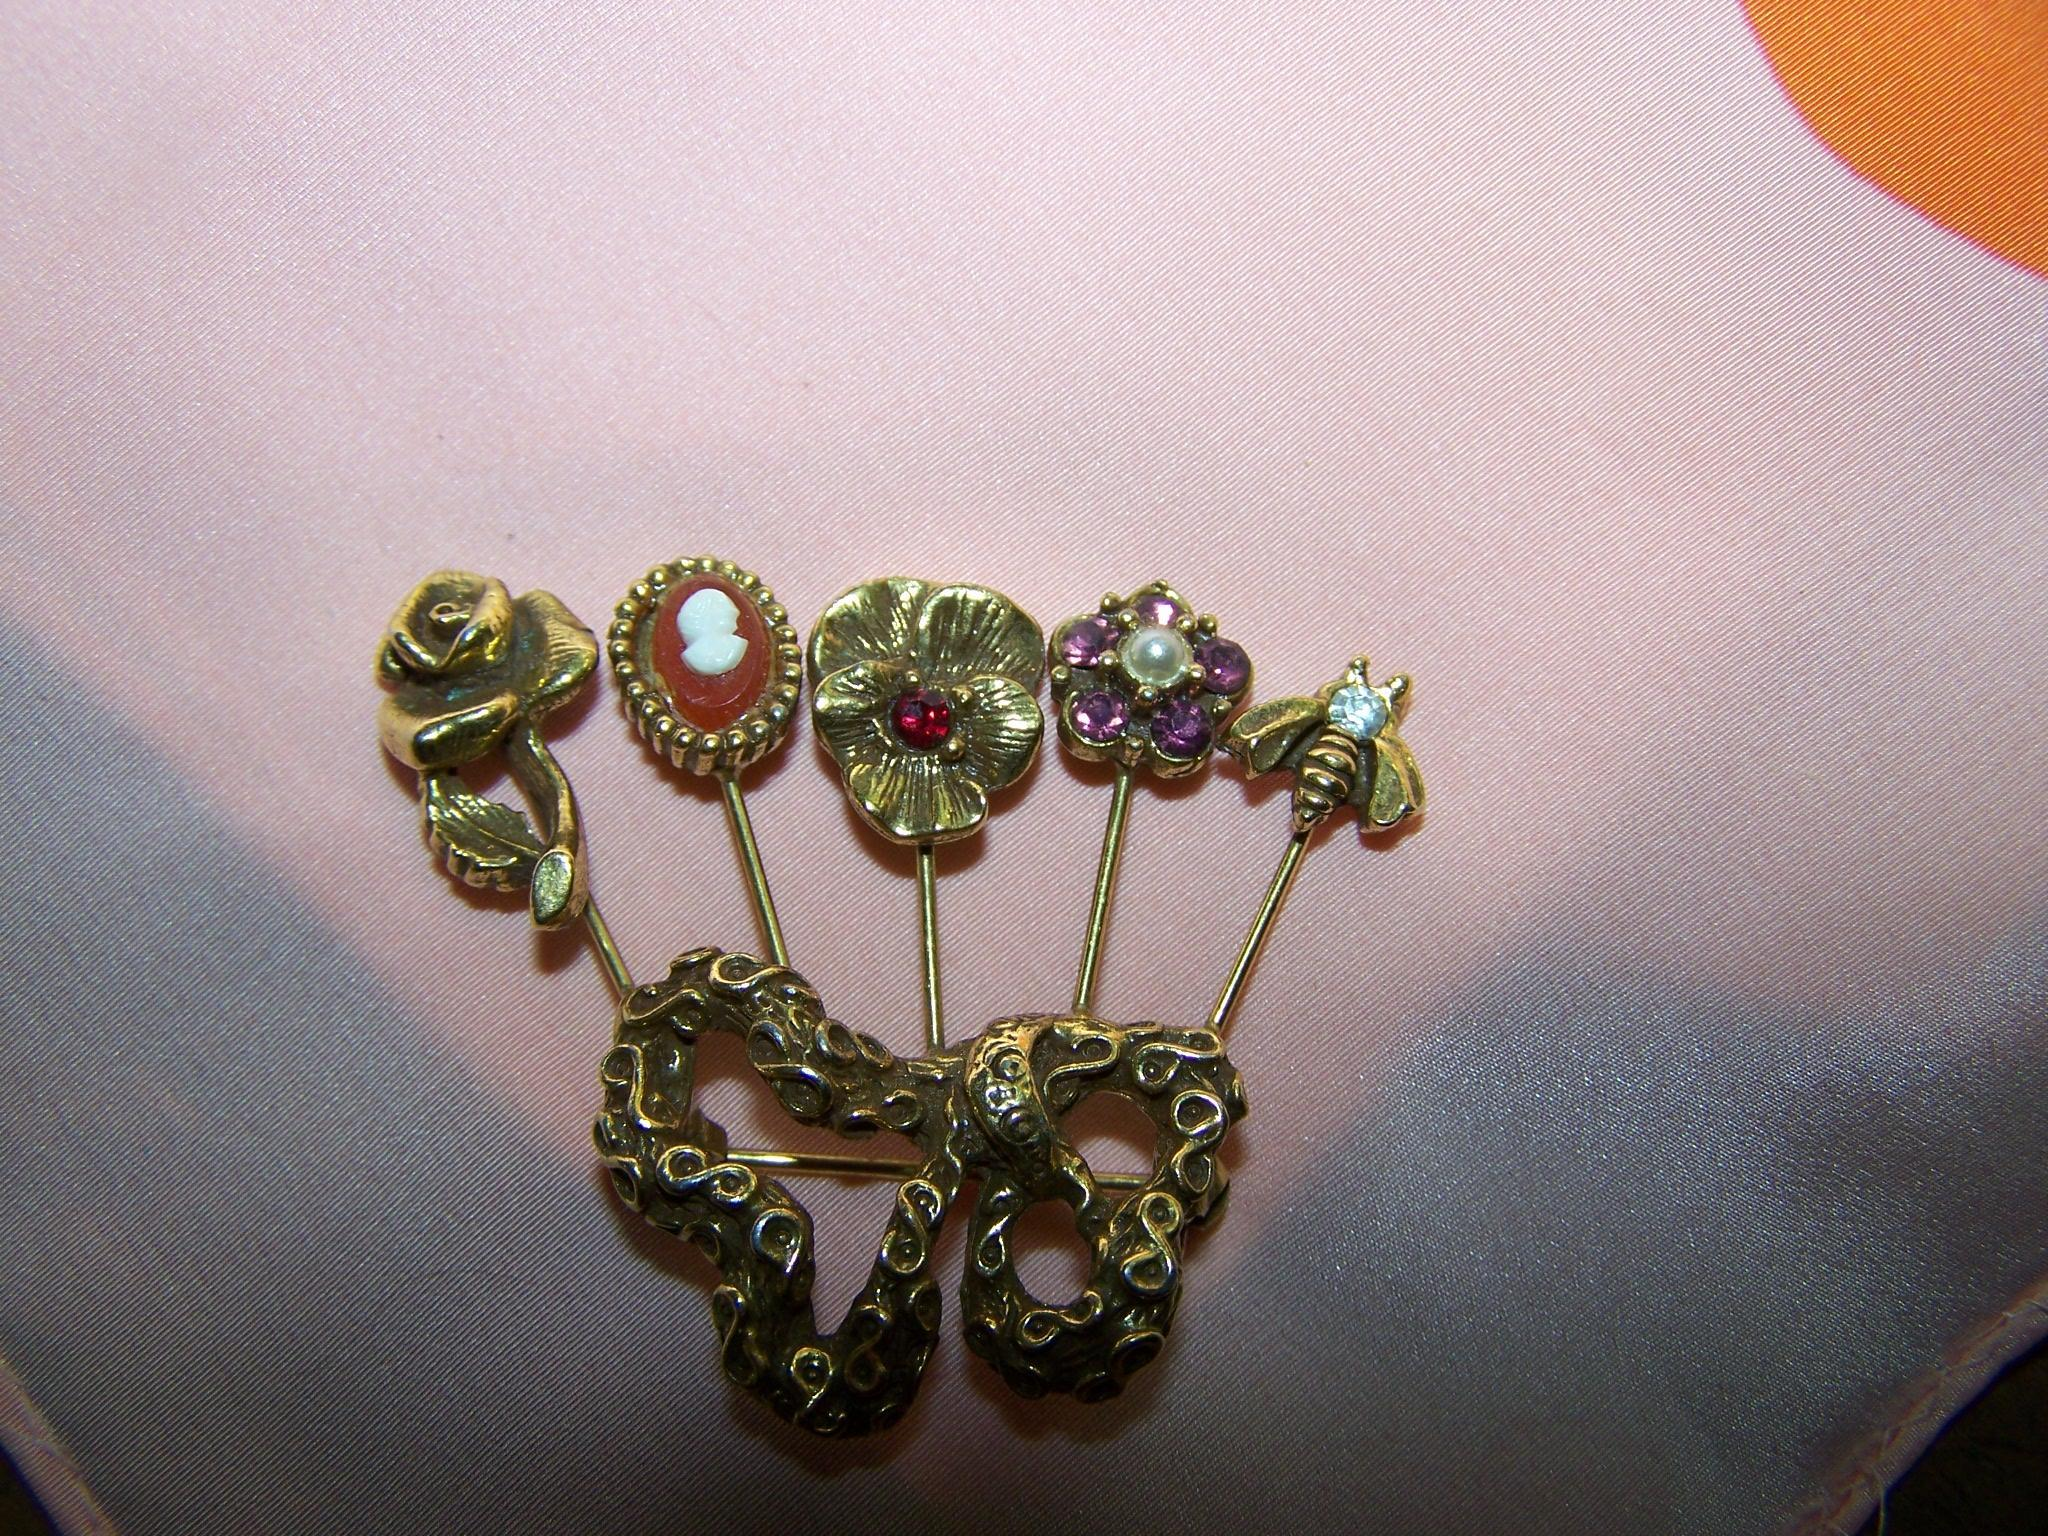 Vintage Goldette Style Faux Stick Pin Brooch / Pin Flowers, Bee & Faux Cameo